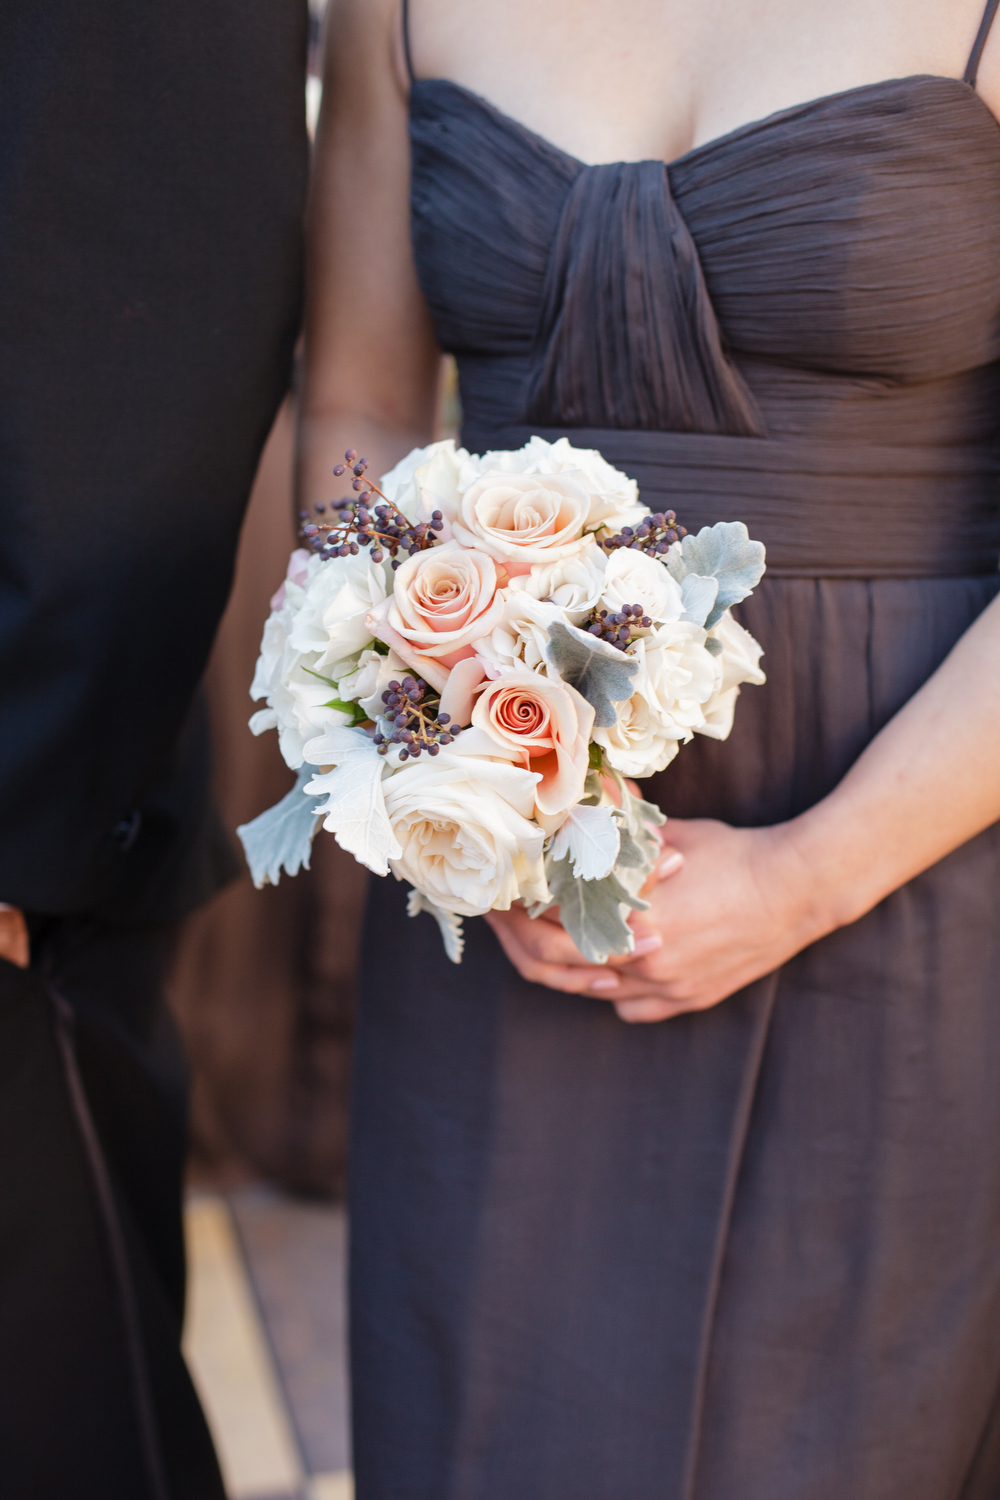 slate gray bridesmaids dress closeup holding bridesmaid bouquet with white and blush roses